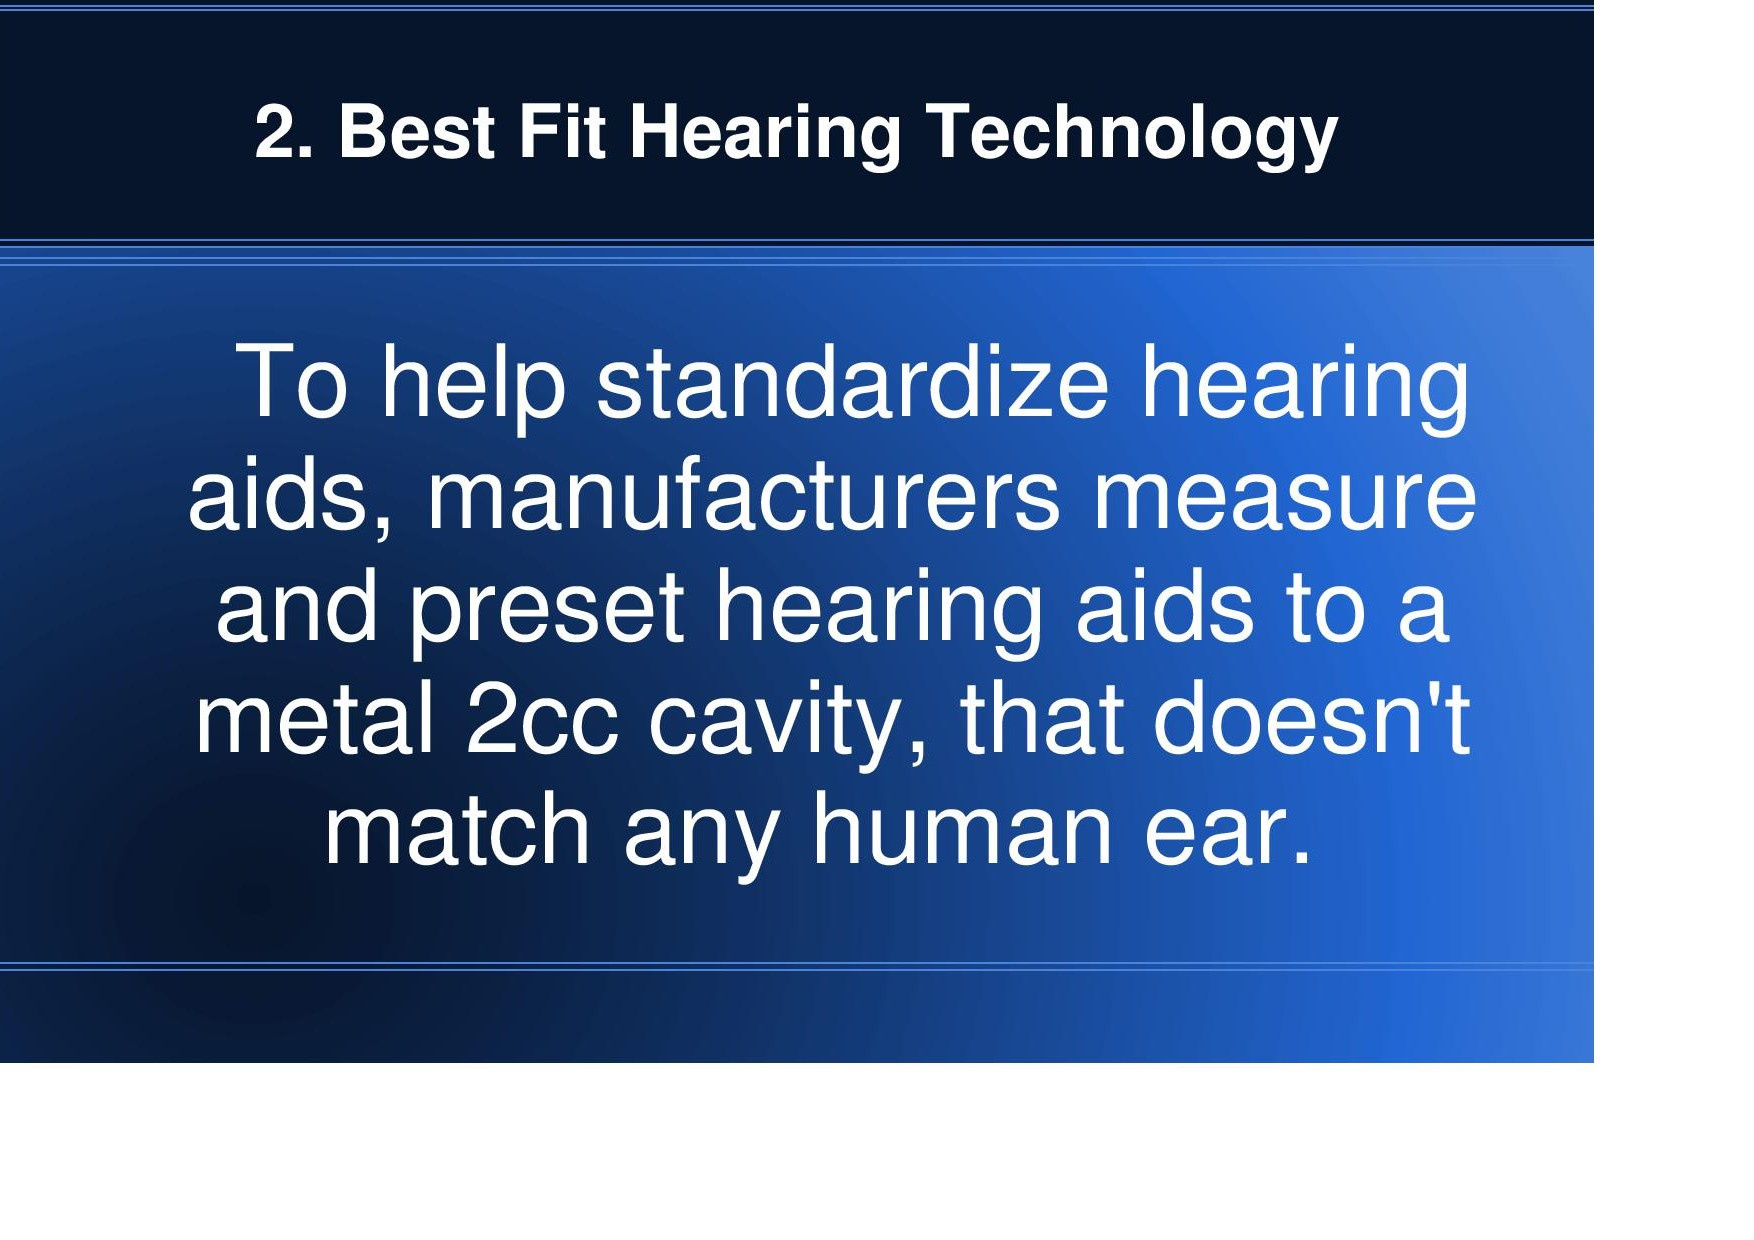 Web 3 ways to combat hearing loss07.jpg